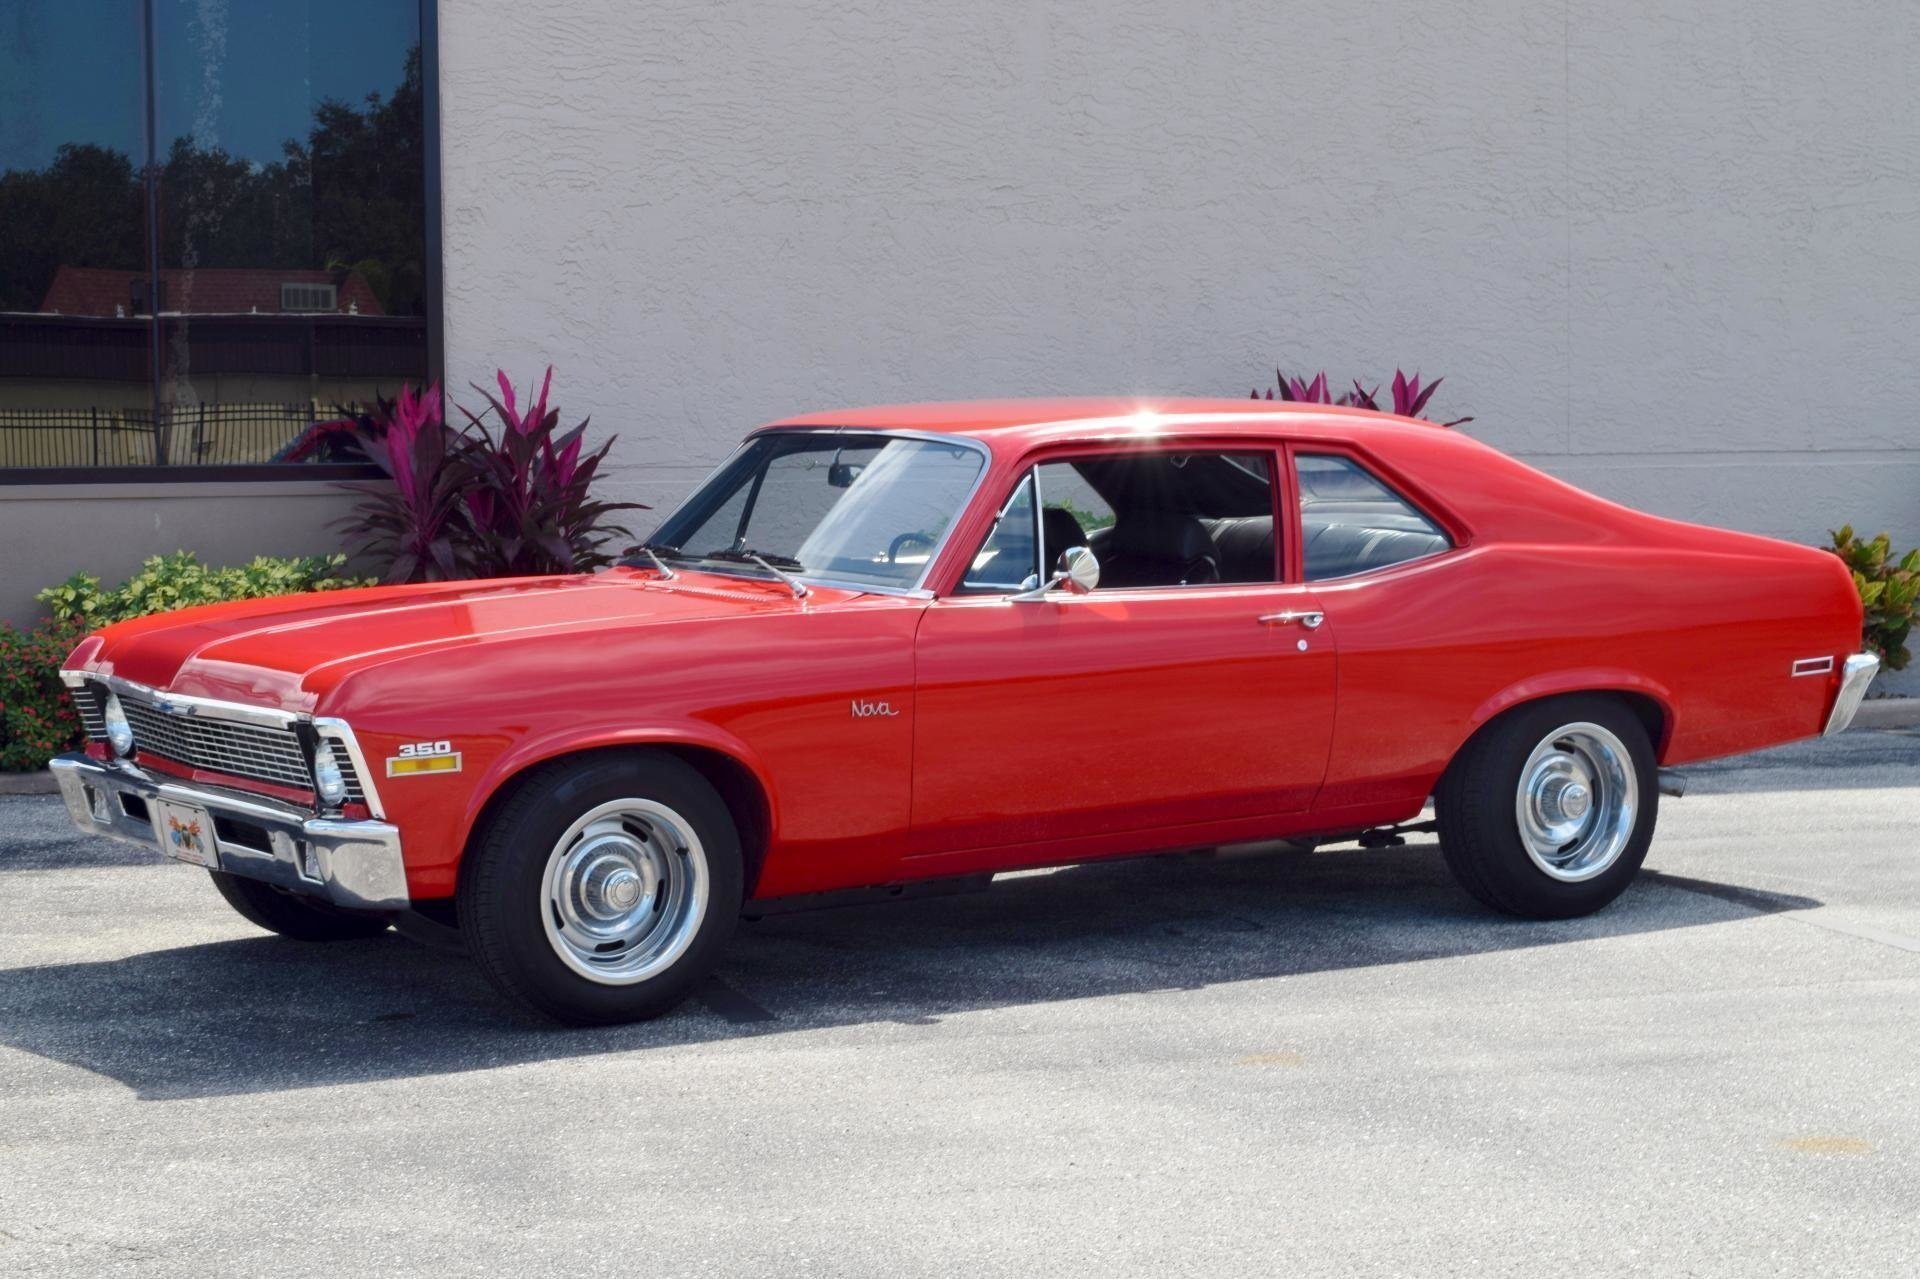 Image result for red chevy nova 1970